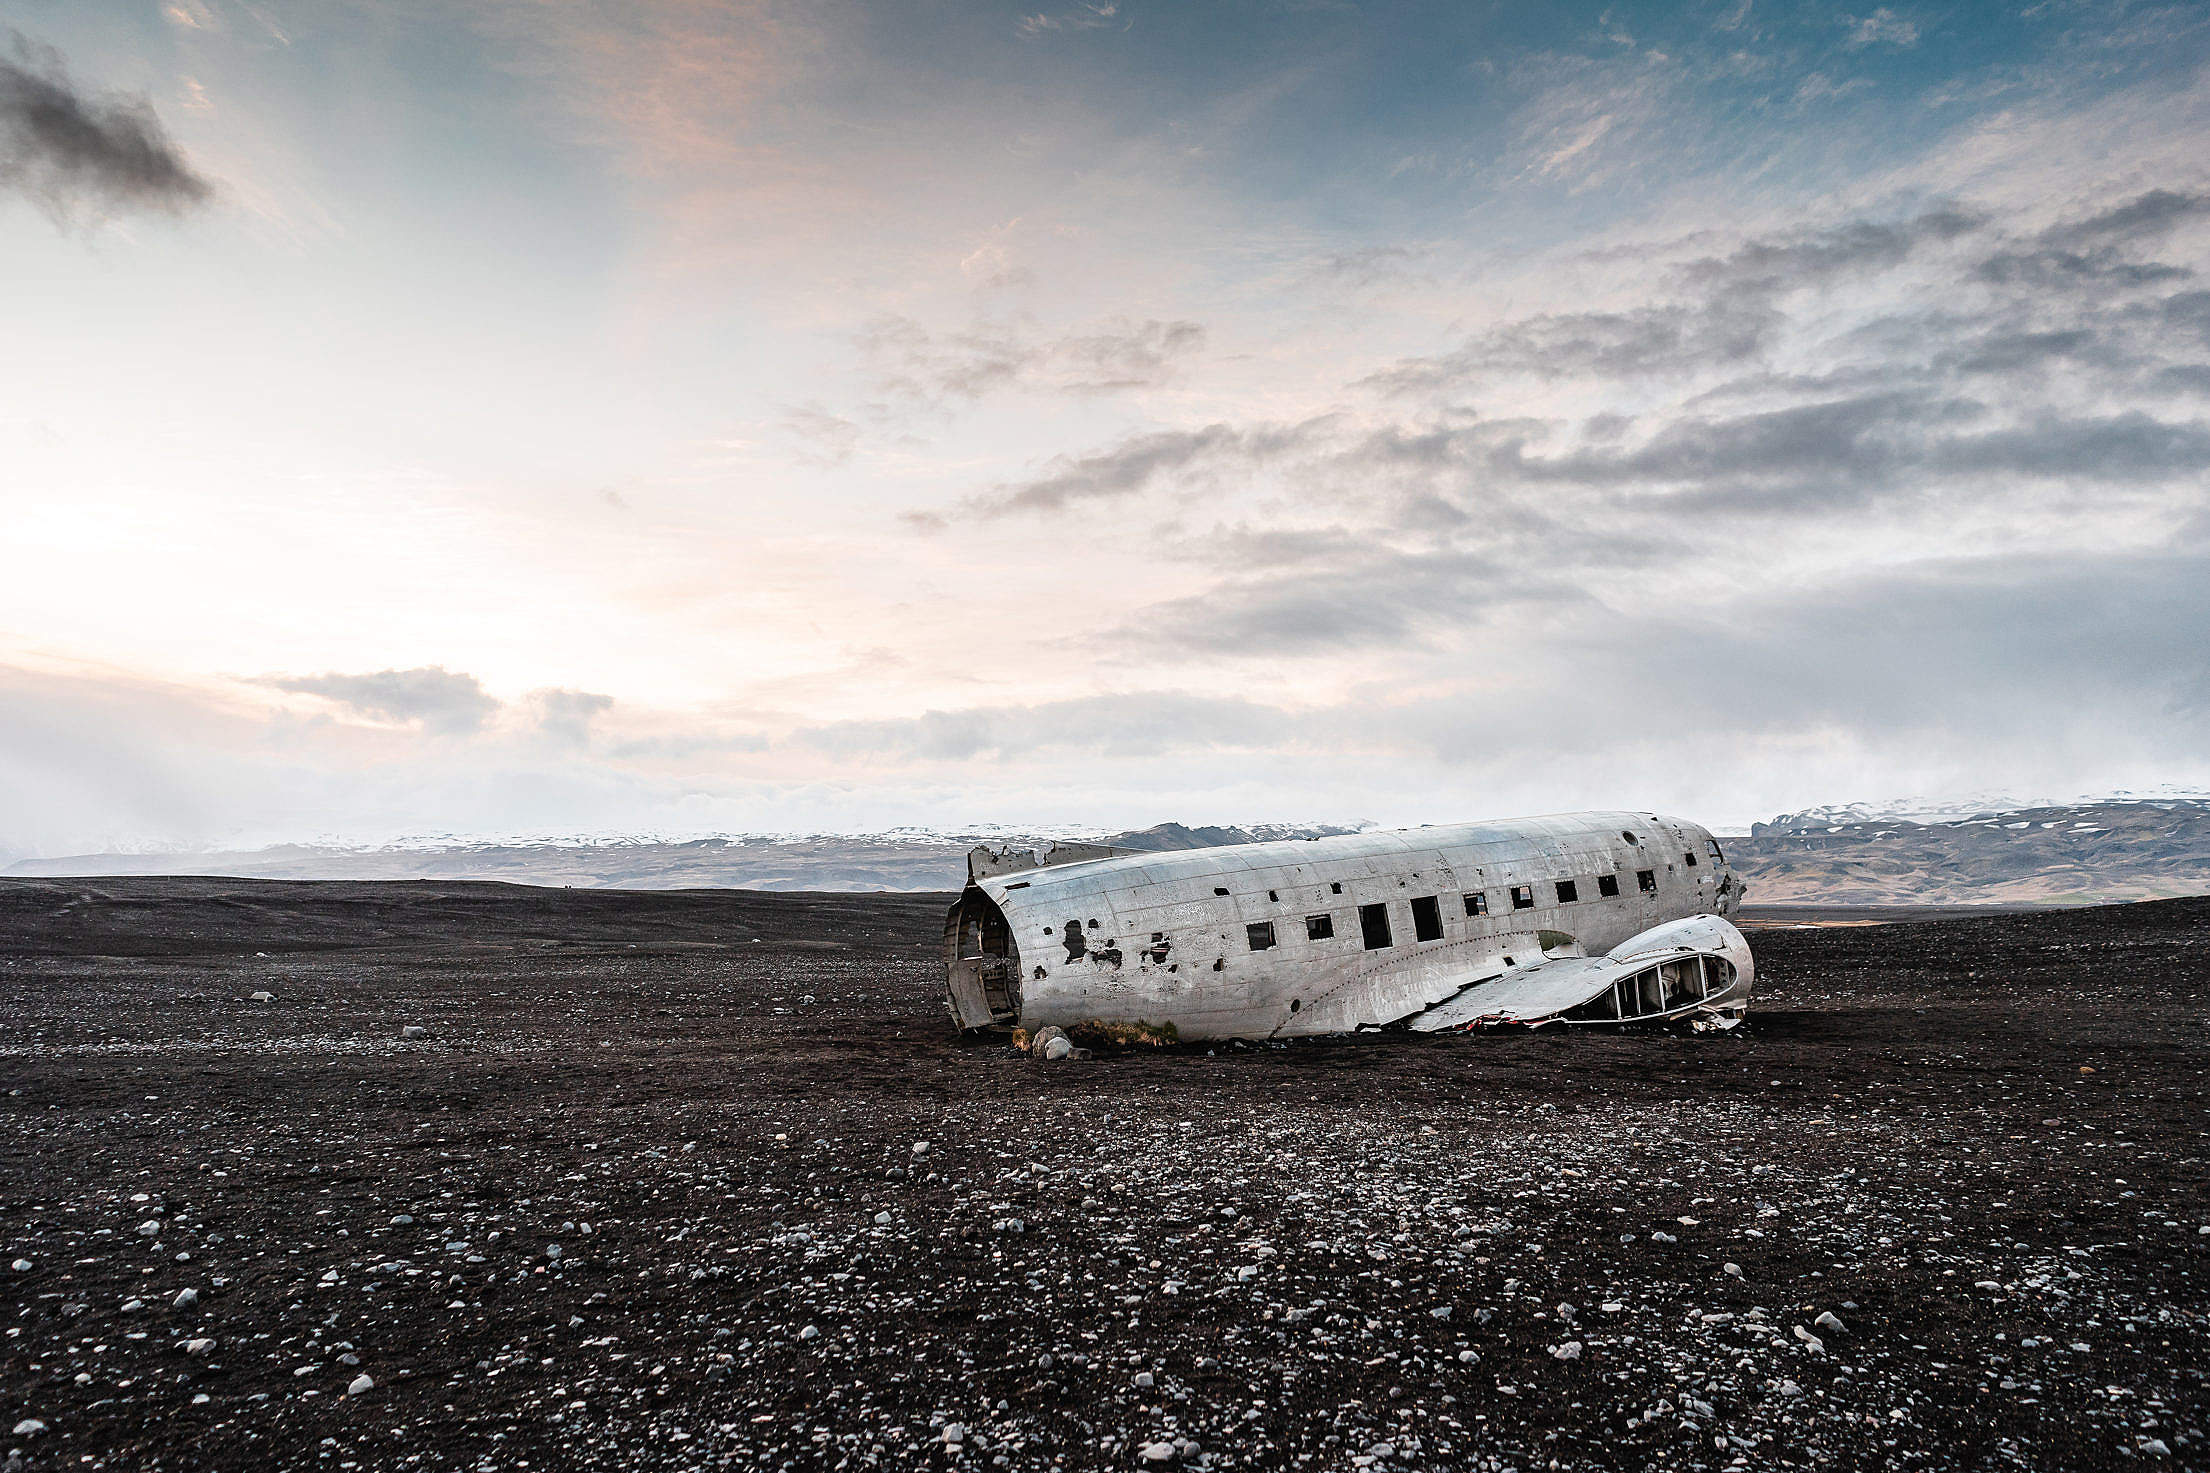 Aircraft Wreck in Iceland Free Stock Photo